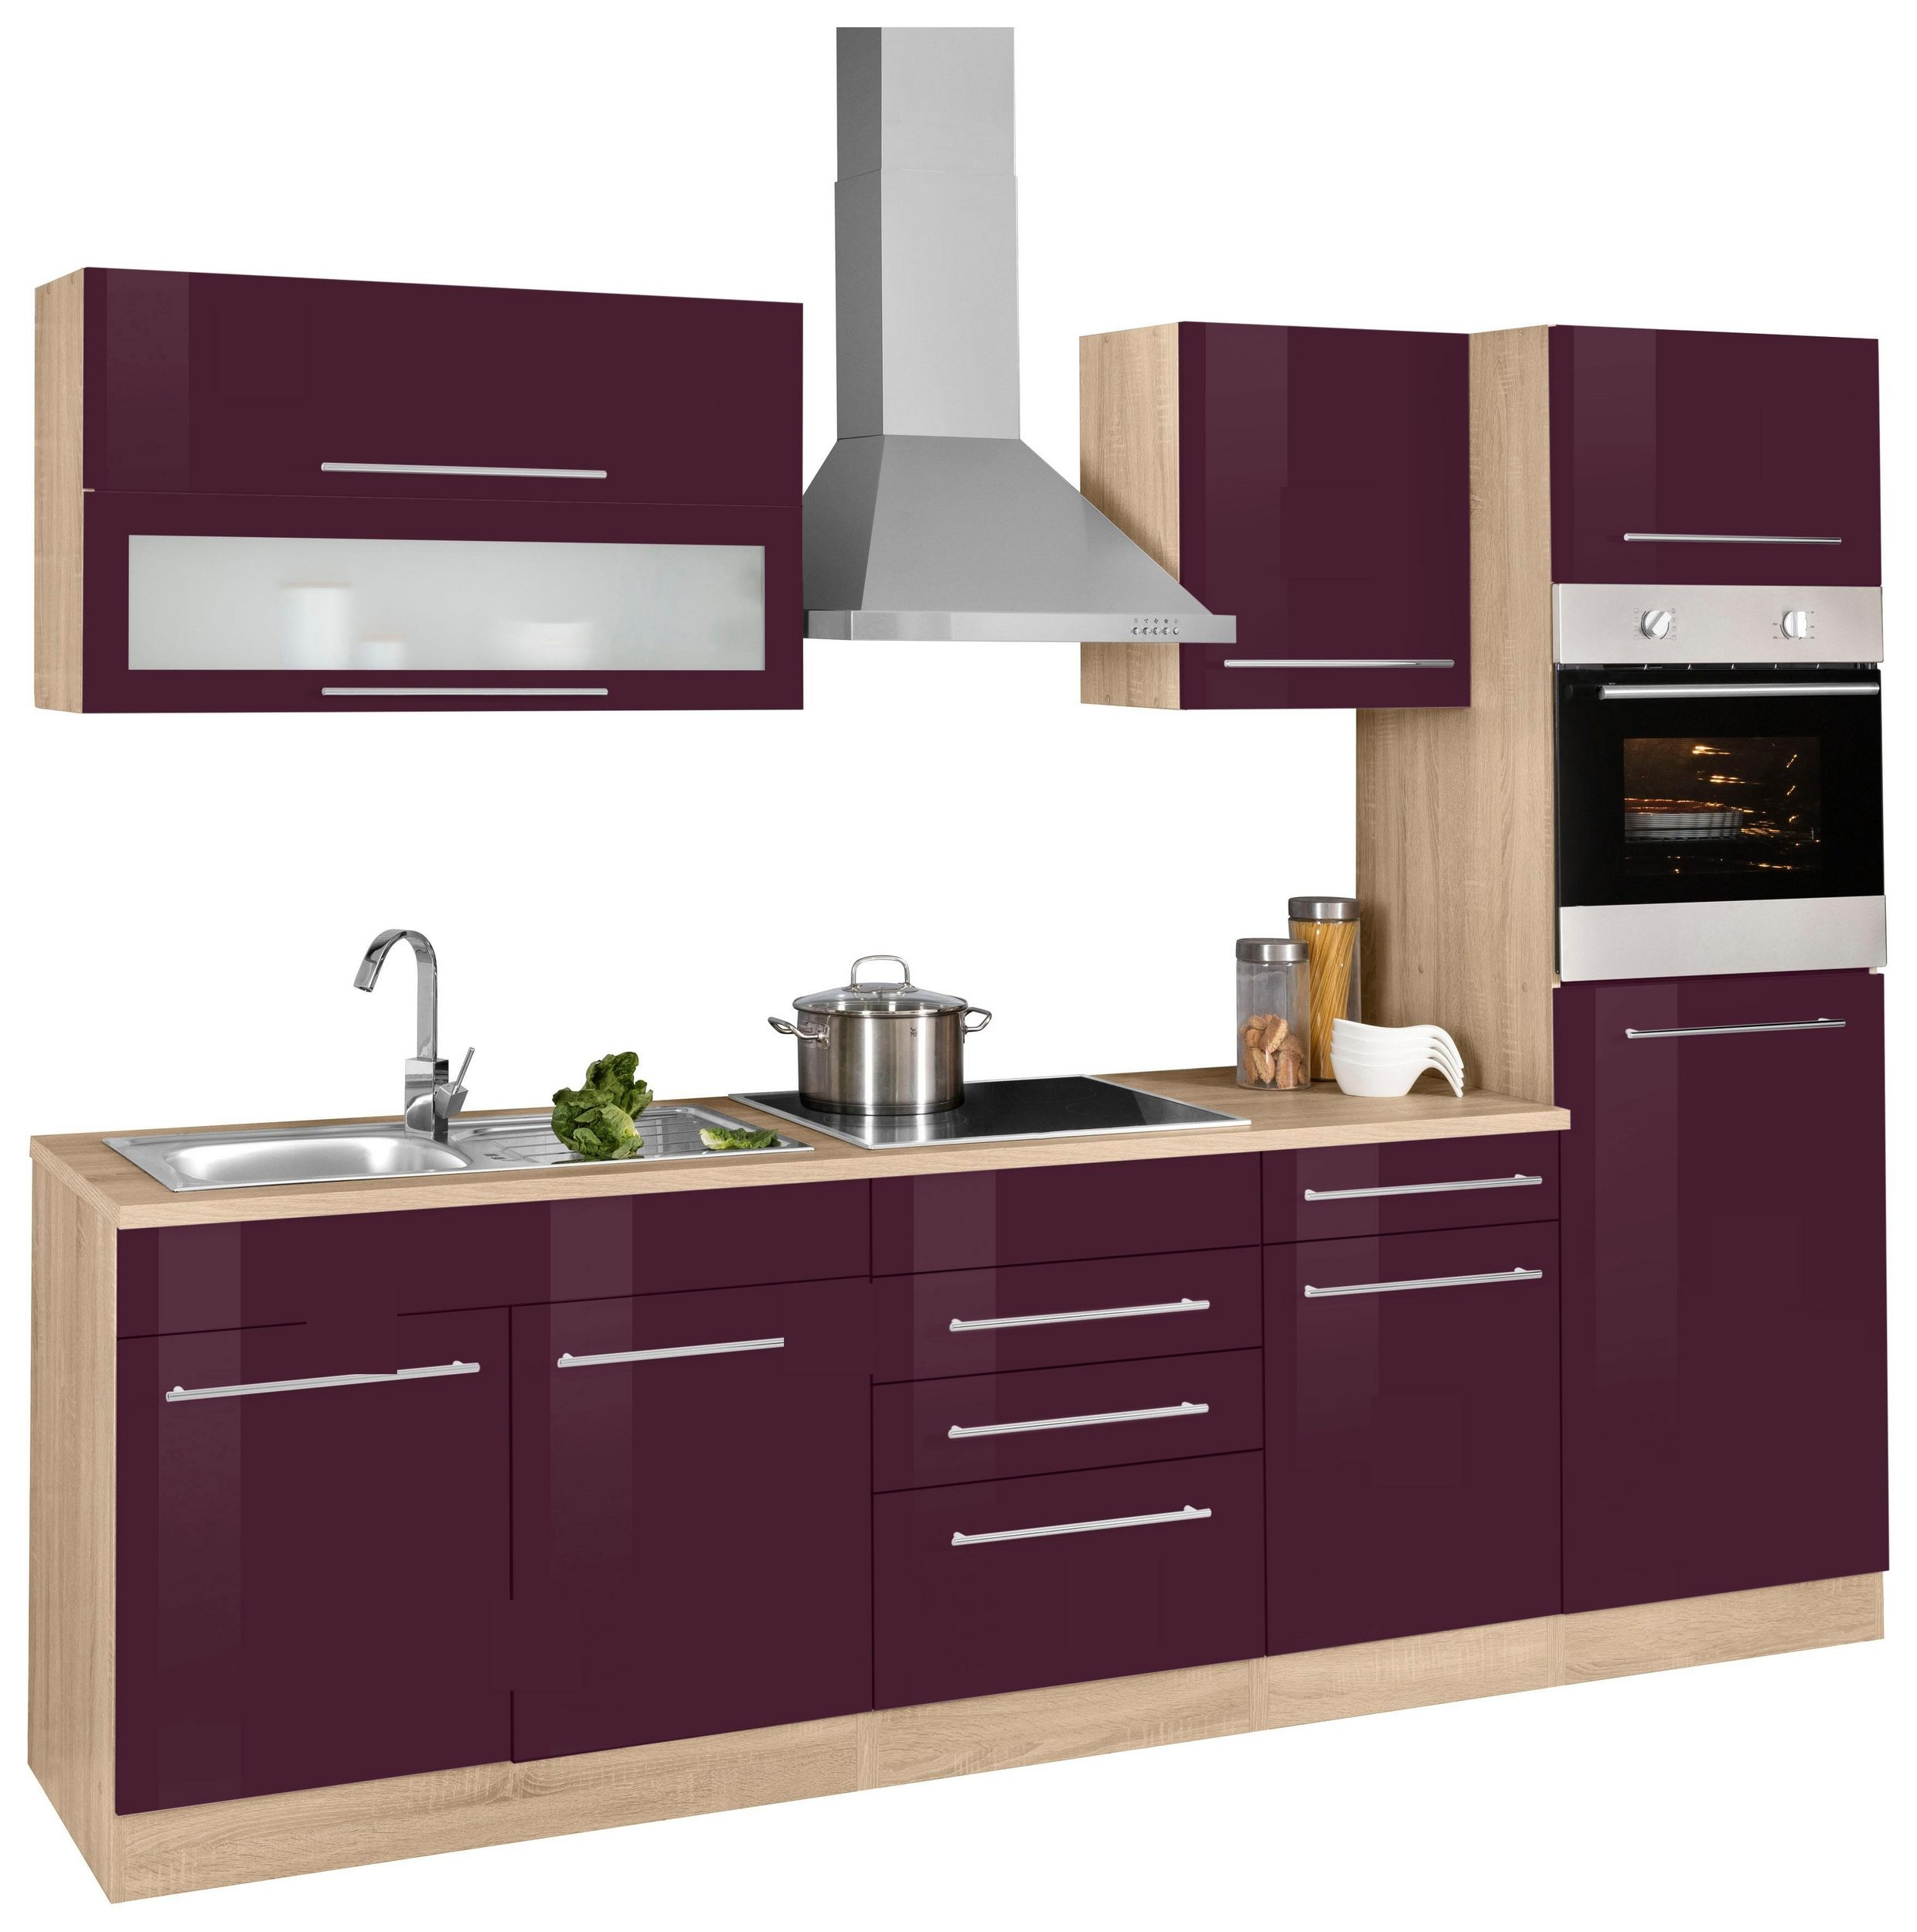 1693153313 Vimle Kitchen Cabinets HELD khmer in phnom penh cambodia